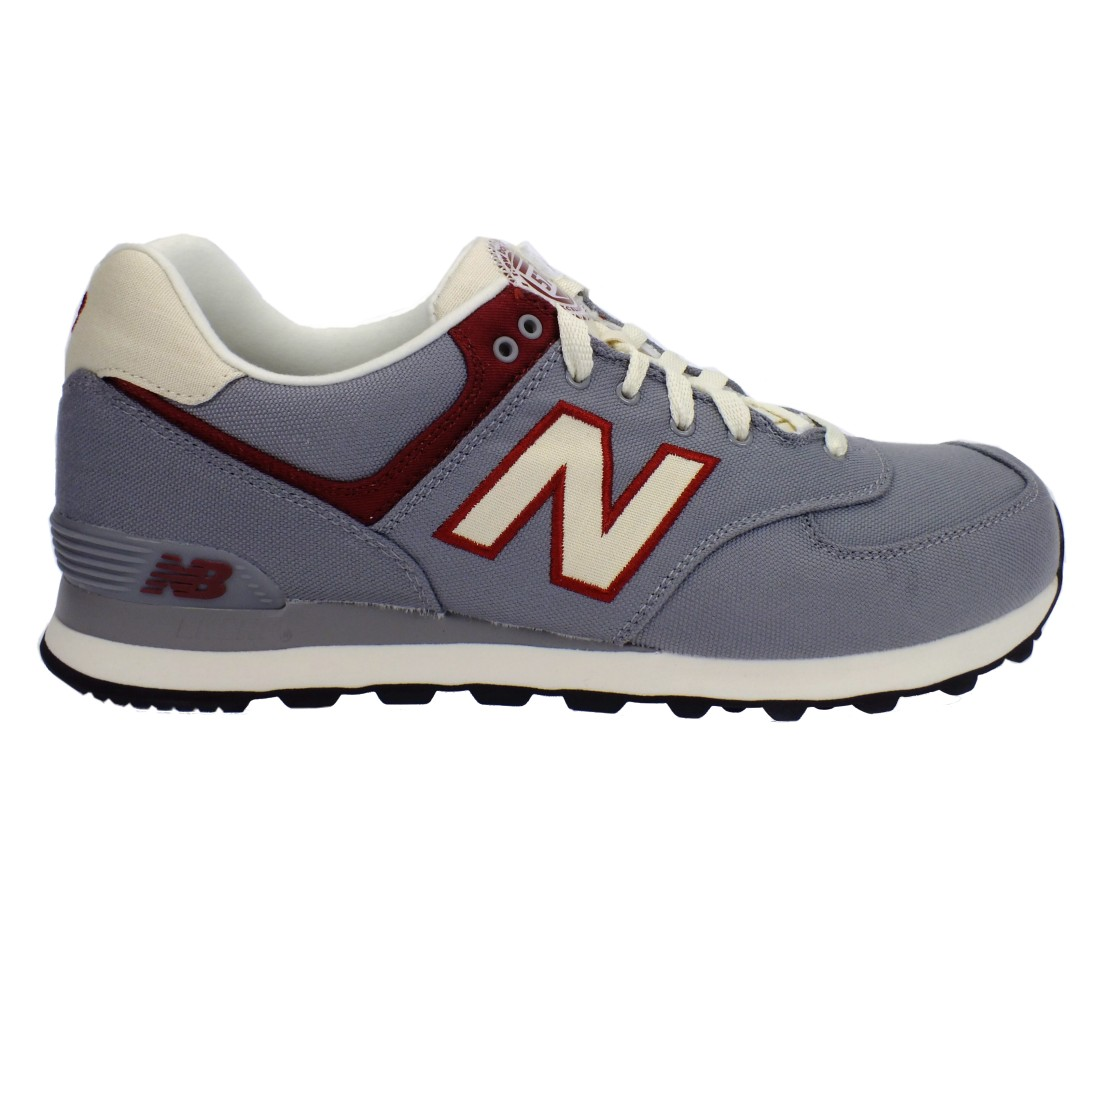 new balance ml 574 textil schuhe sneaker herren run rub apy apk rug apb apg ebay. Black Bedroom Furniture Sets. Home Design Ideas